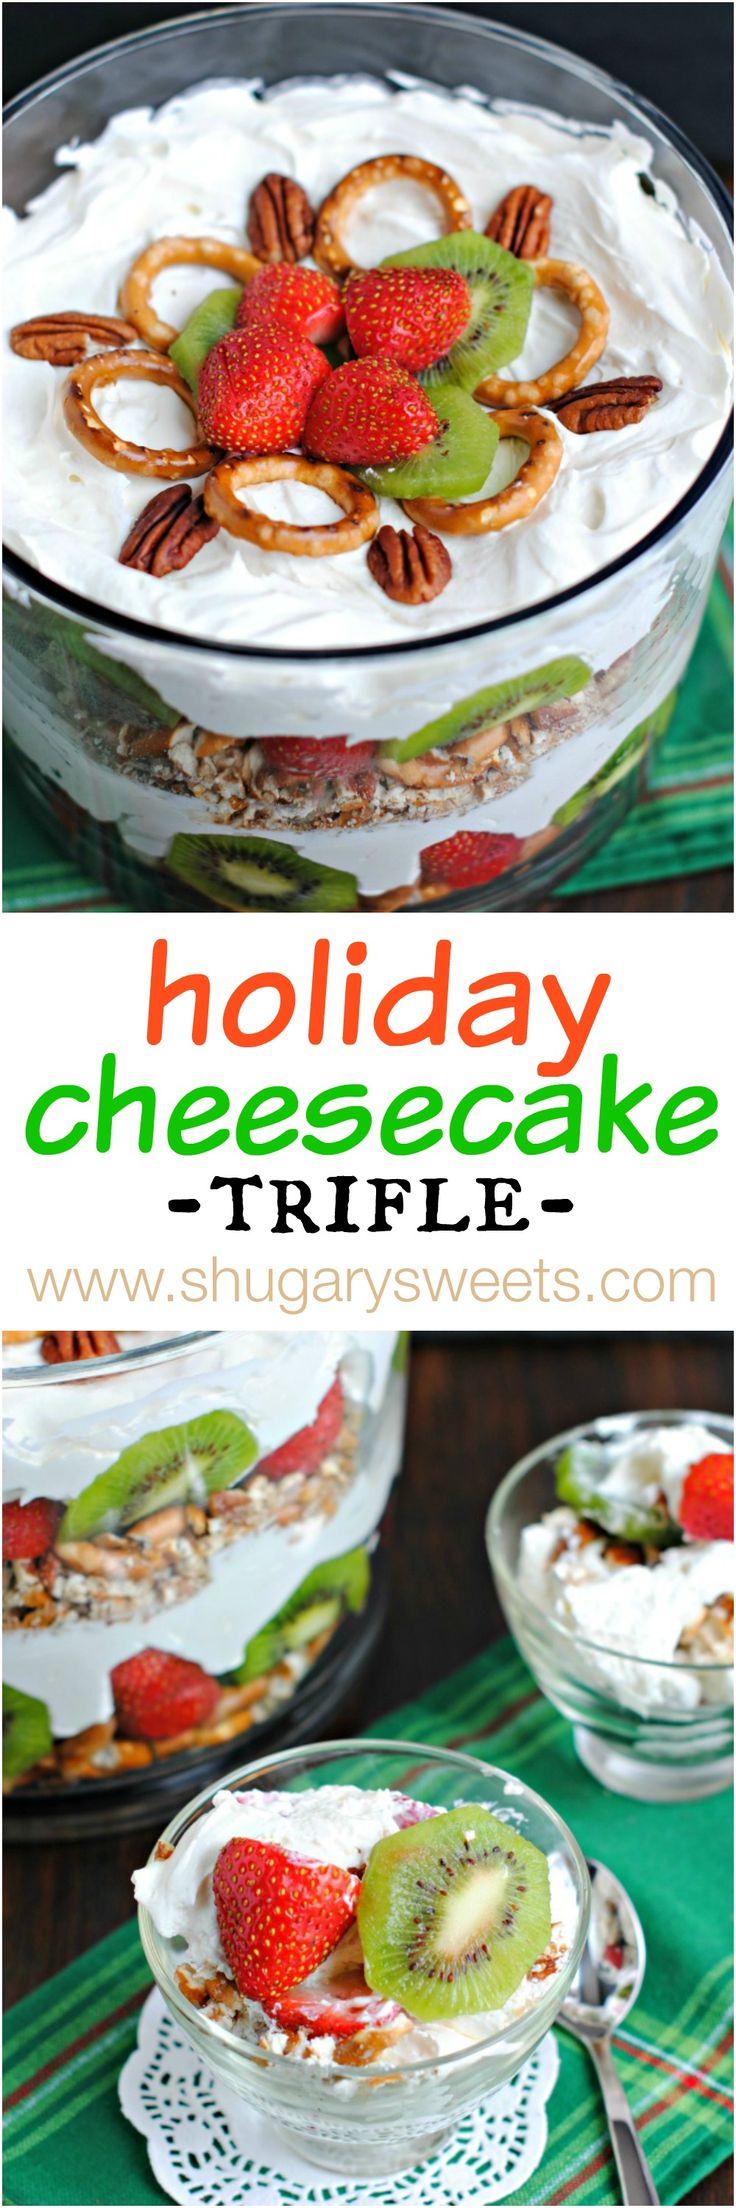 This Holiday Pretzel Cheesecake Trifle is a huge crowd pleaser. Easy to assemble, this no bake cheesecake filling is light and refreshing too!